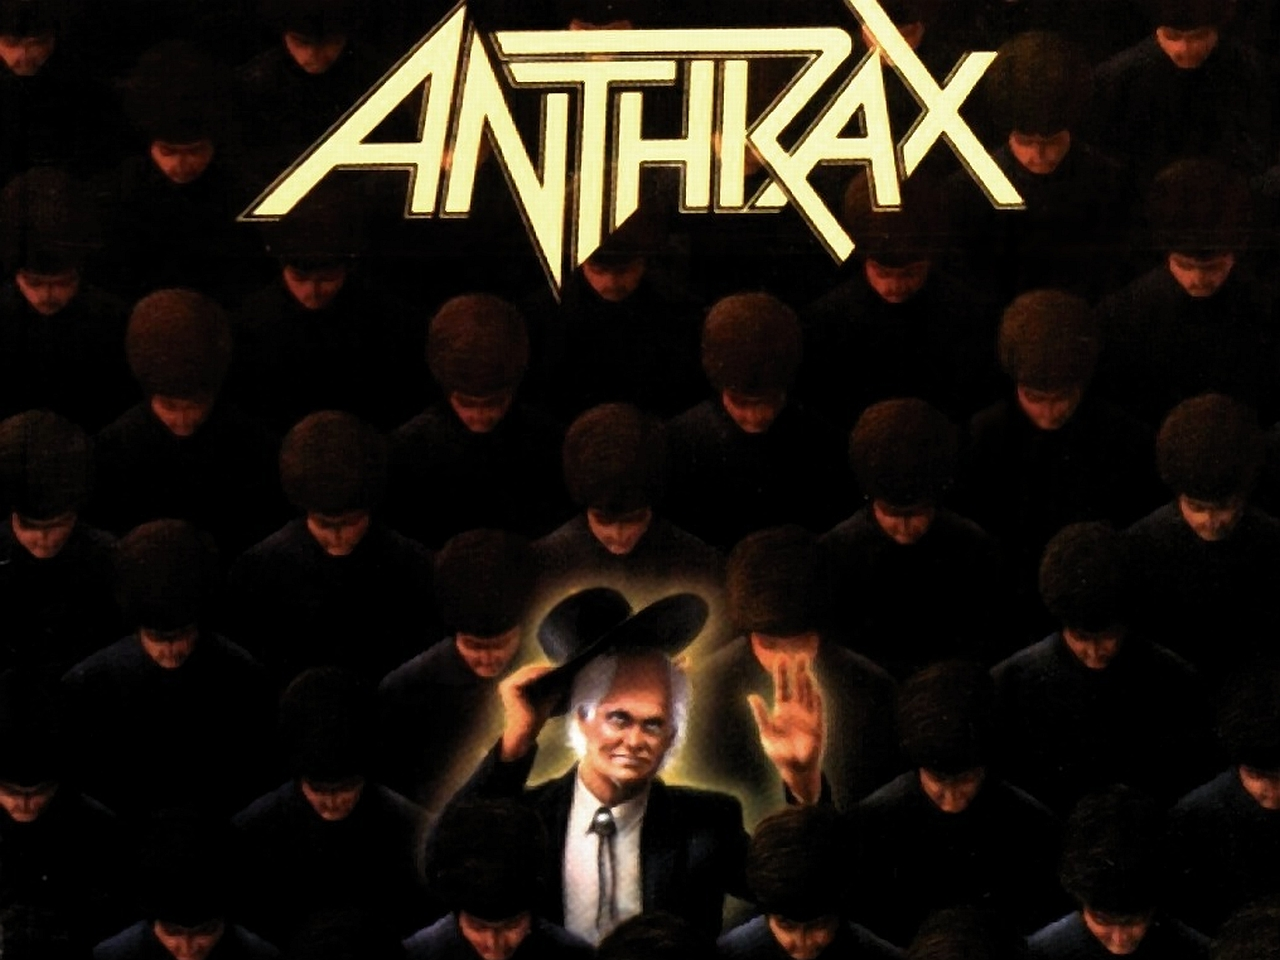 Anthrax Wallpaper and Background Image 1280x960 ID239909 1280x960